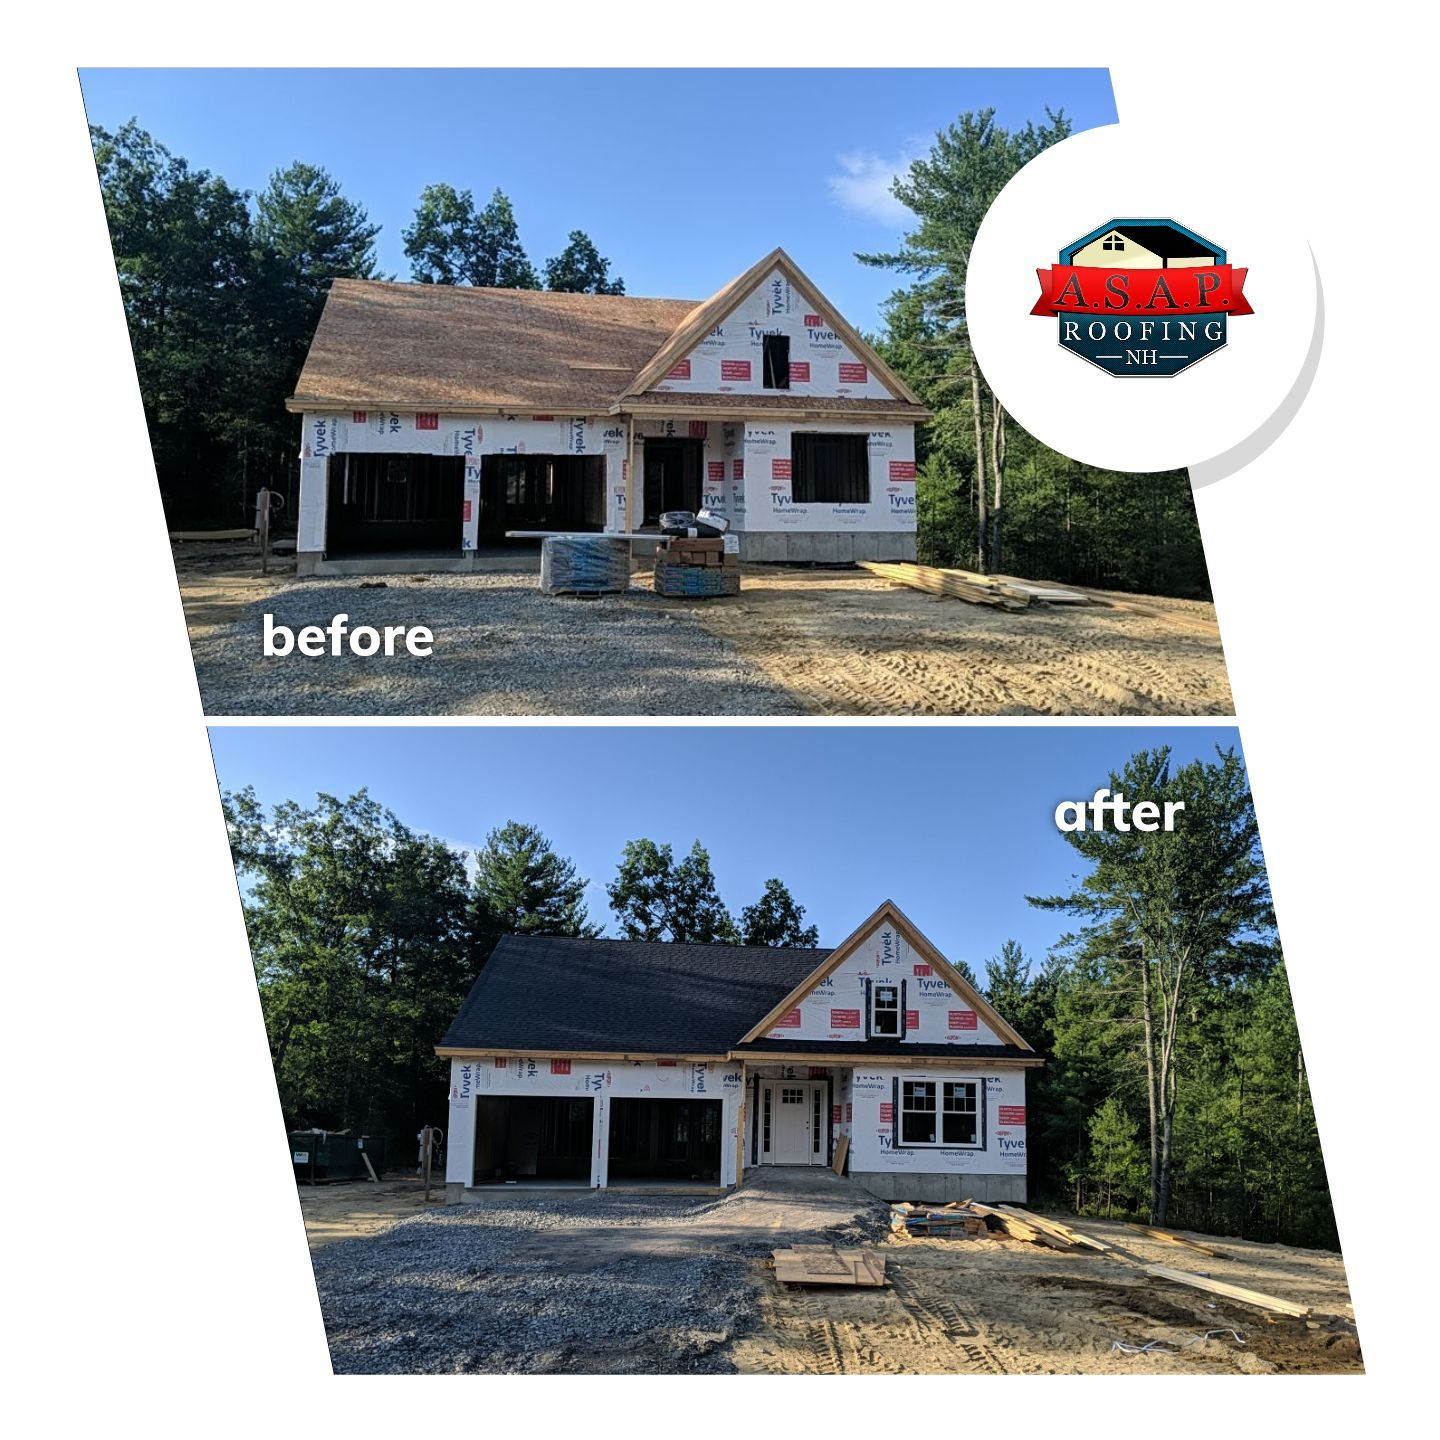 Residential Roofing, New Construction in Litchfield NH by ASAP Roofing